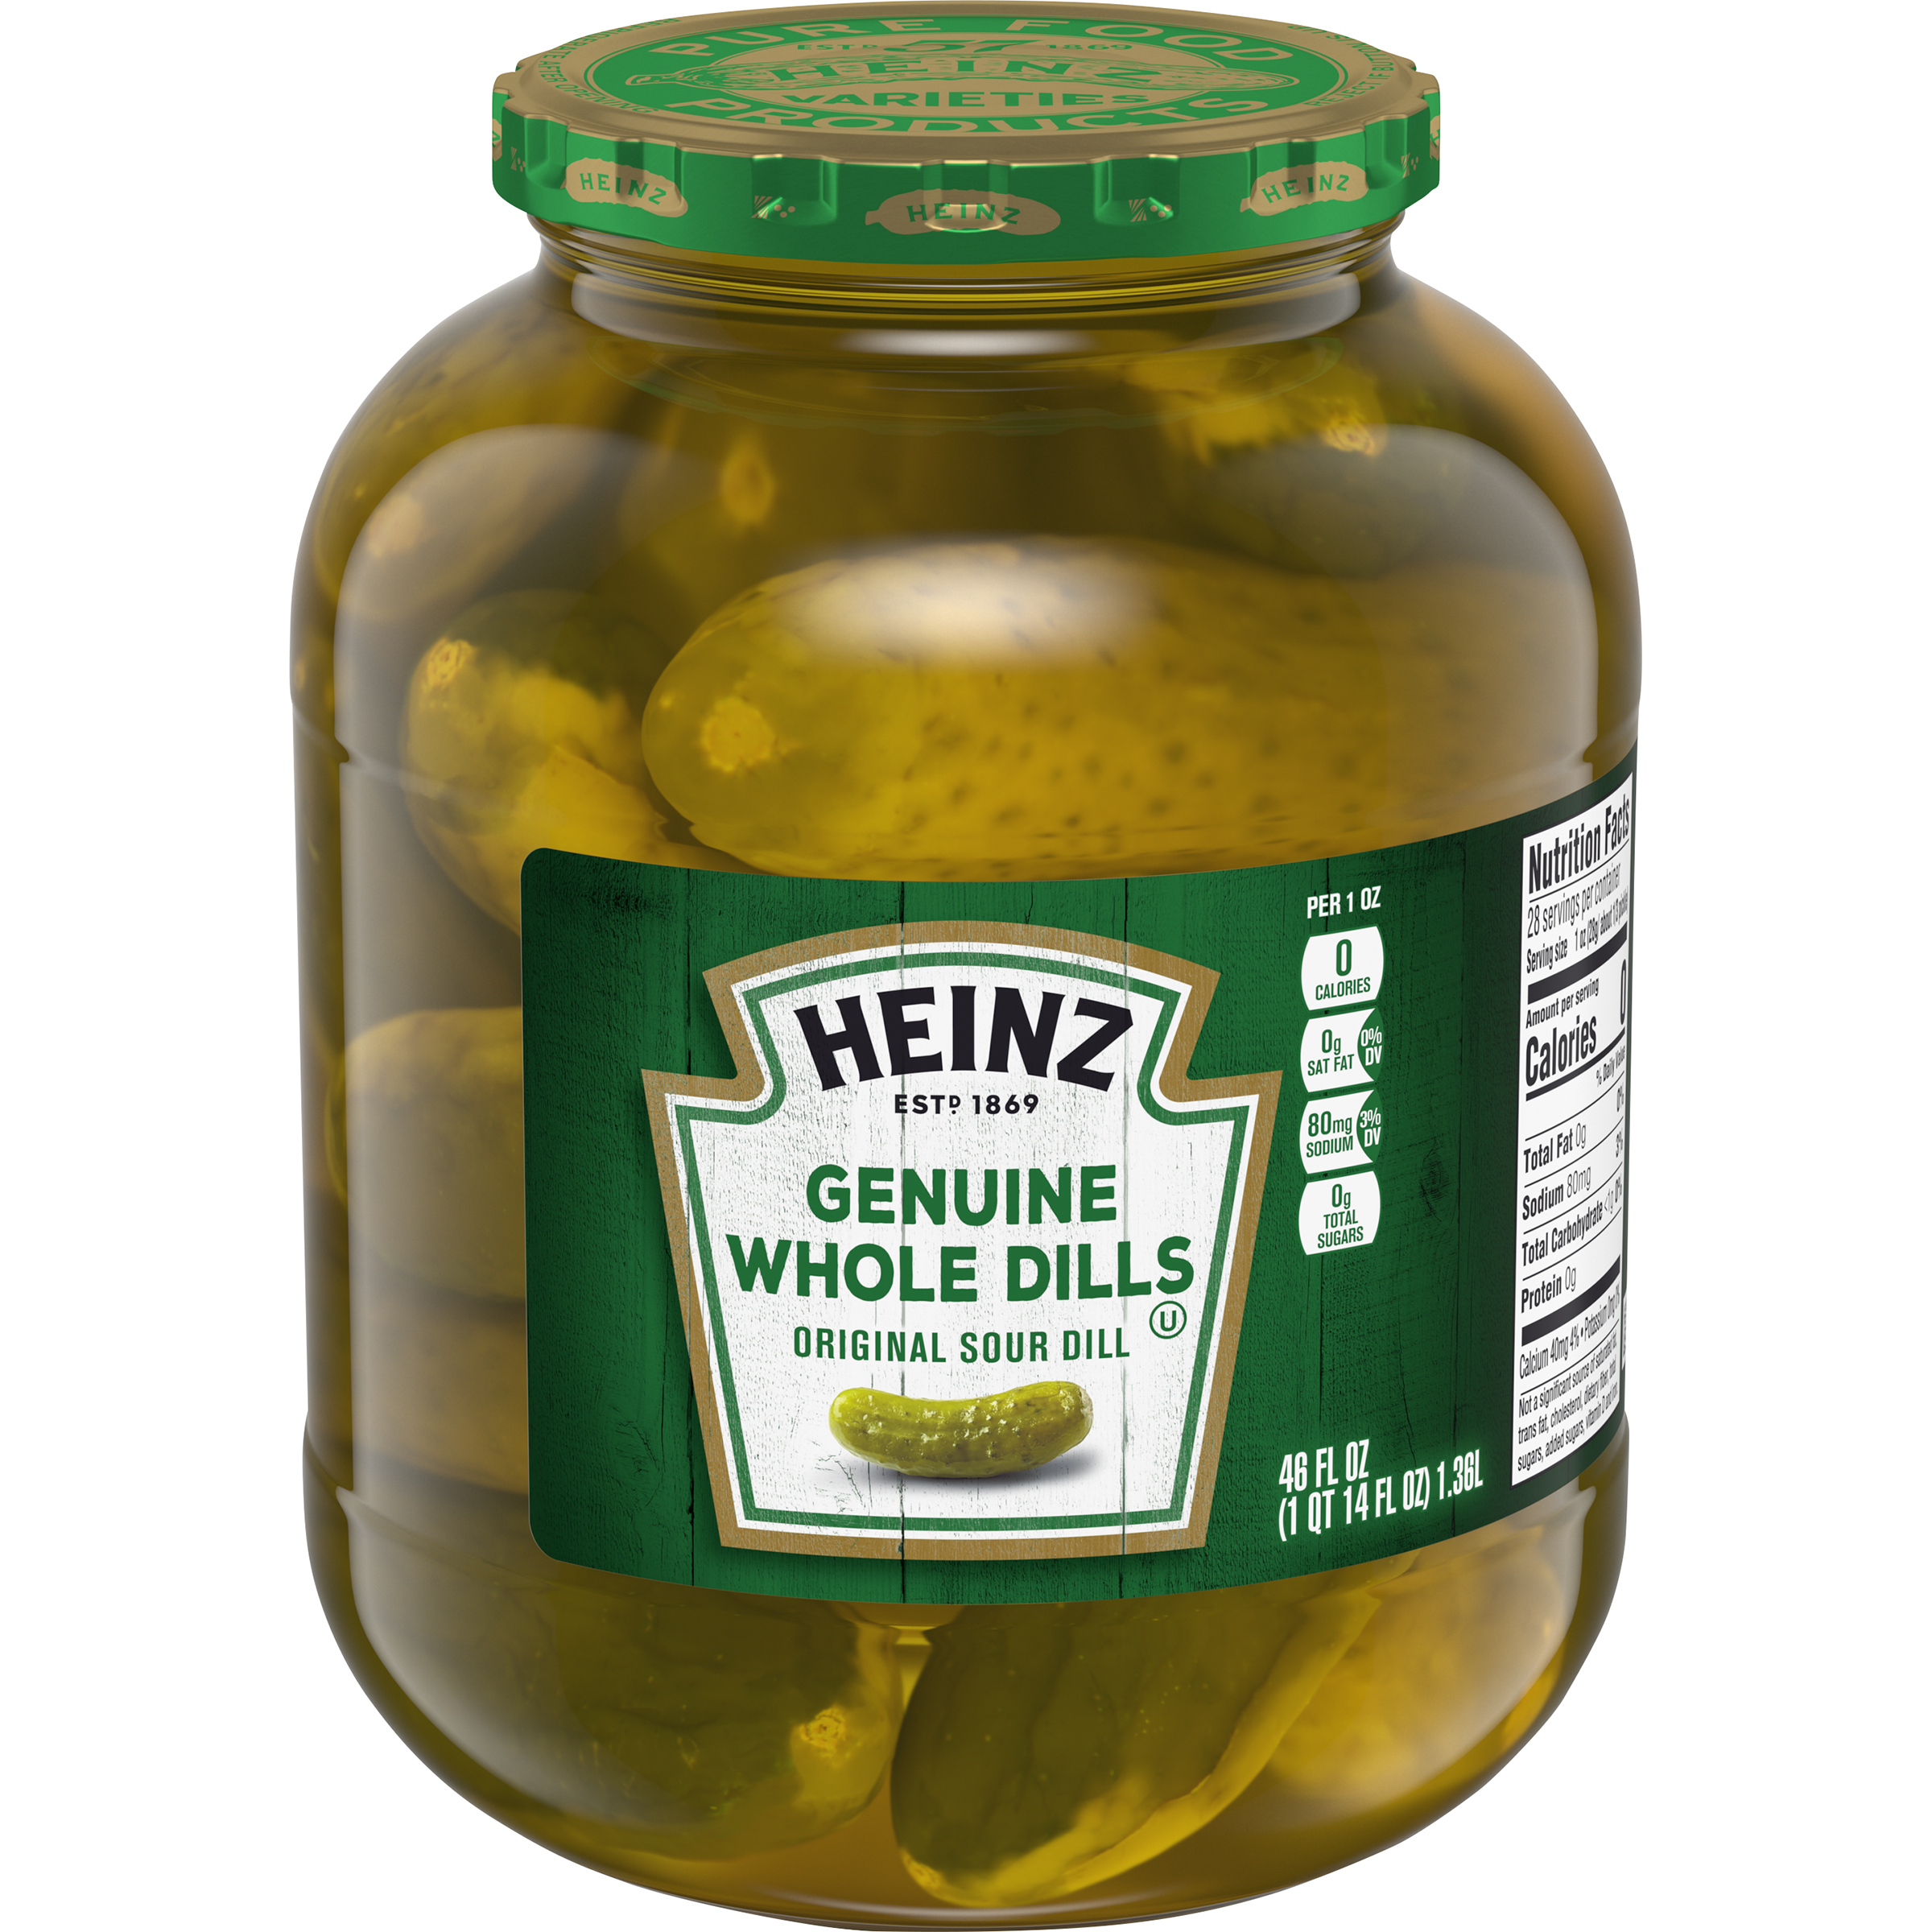 Heinz Premium Genuine Dills Pickles 46 Oz Jar image